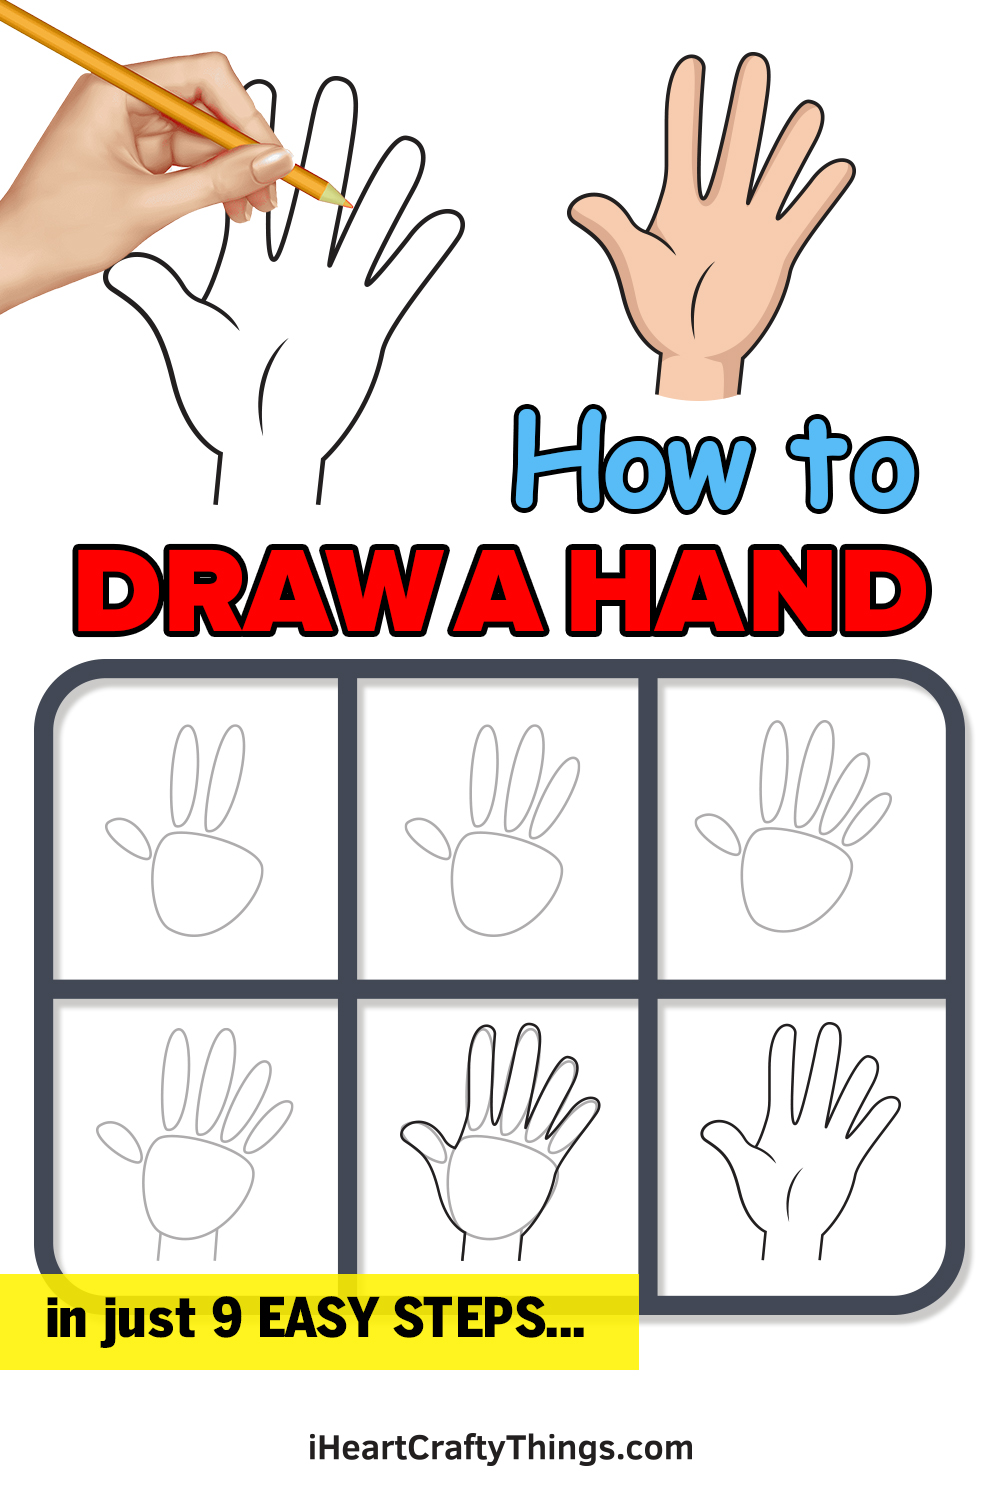 How to Draw a Hand in 9 Easy Steps